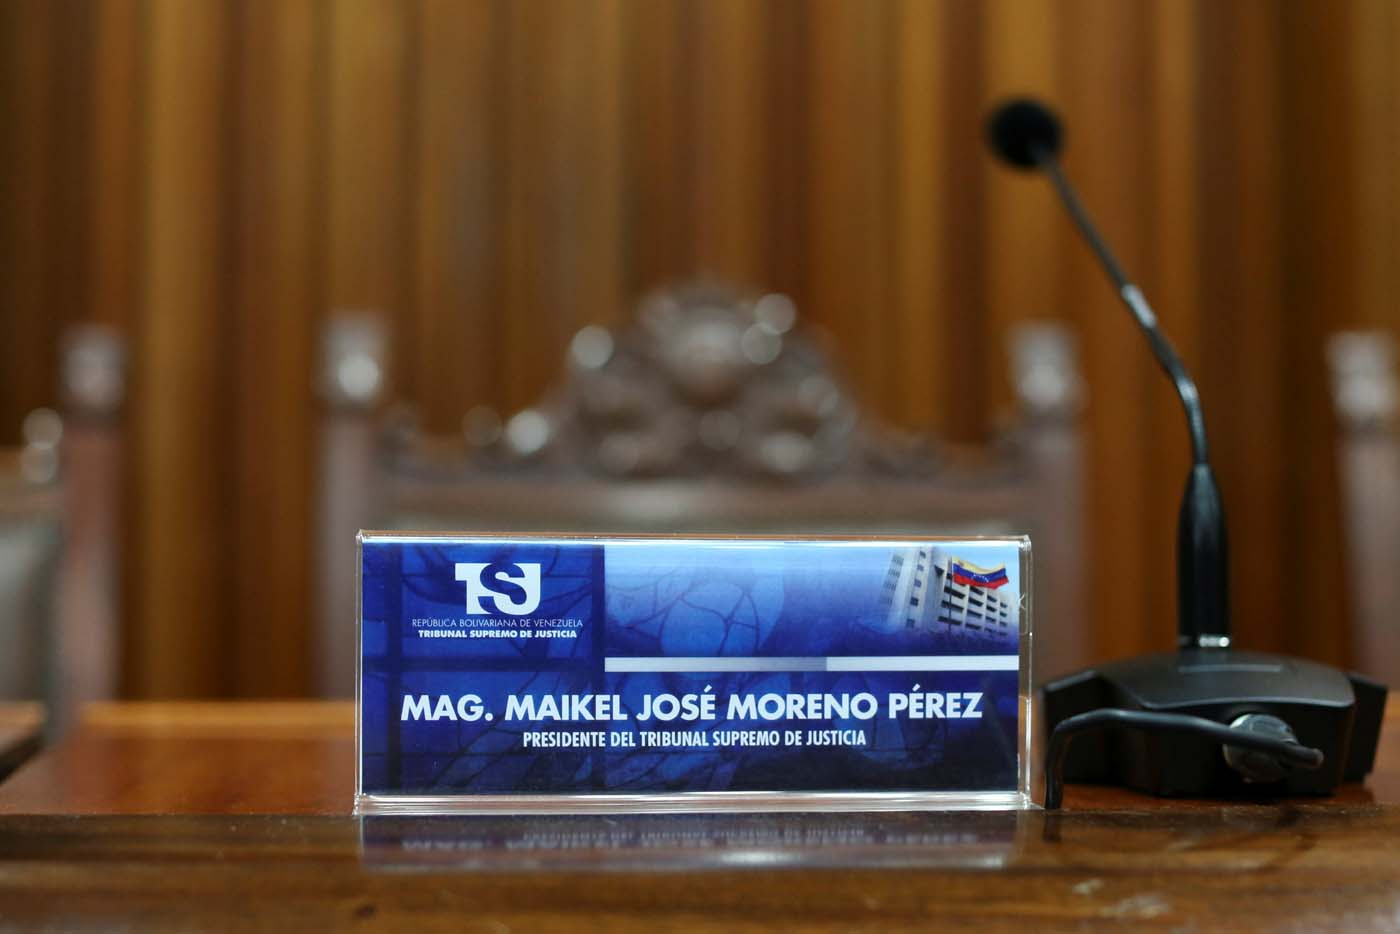 A sign with the name of Venezuela's Supreme Court President Maikel Moreno, is seen before a news conference at the Supreme Court of Justice (TSJ) in Caracas, Venezuela April 1, 2017 REUTERS/Carlos Garcia Rawlins